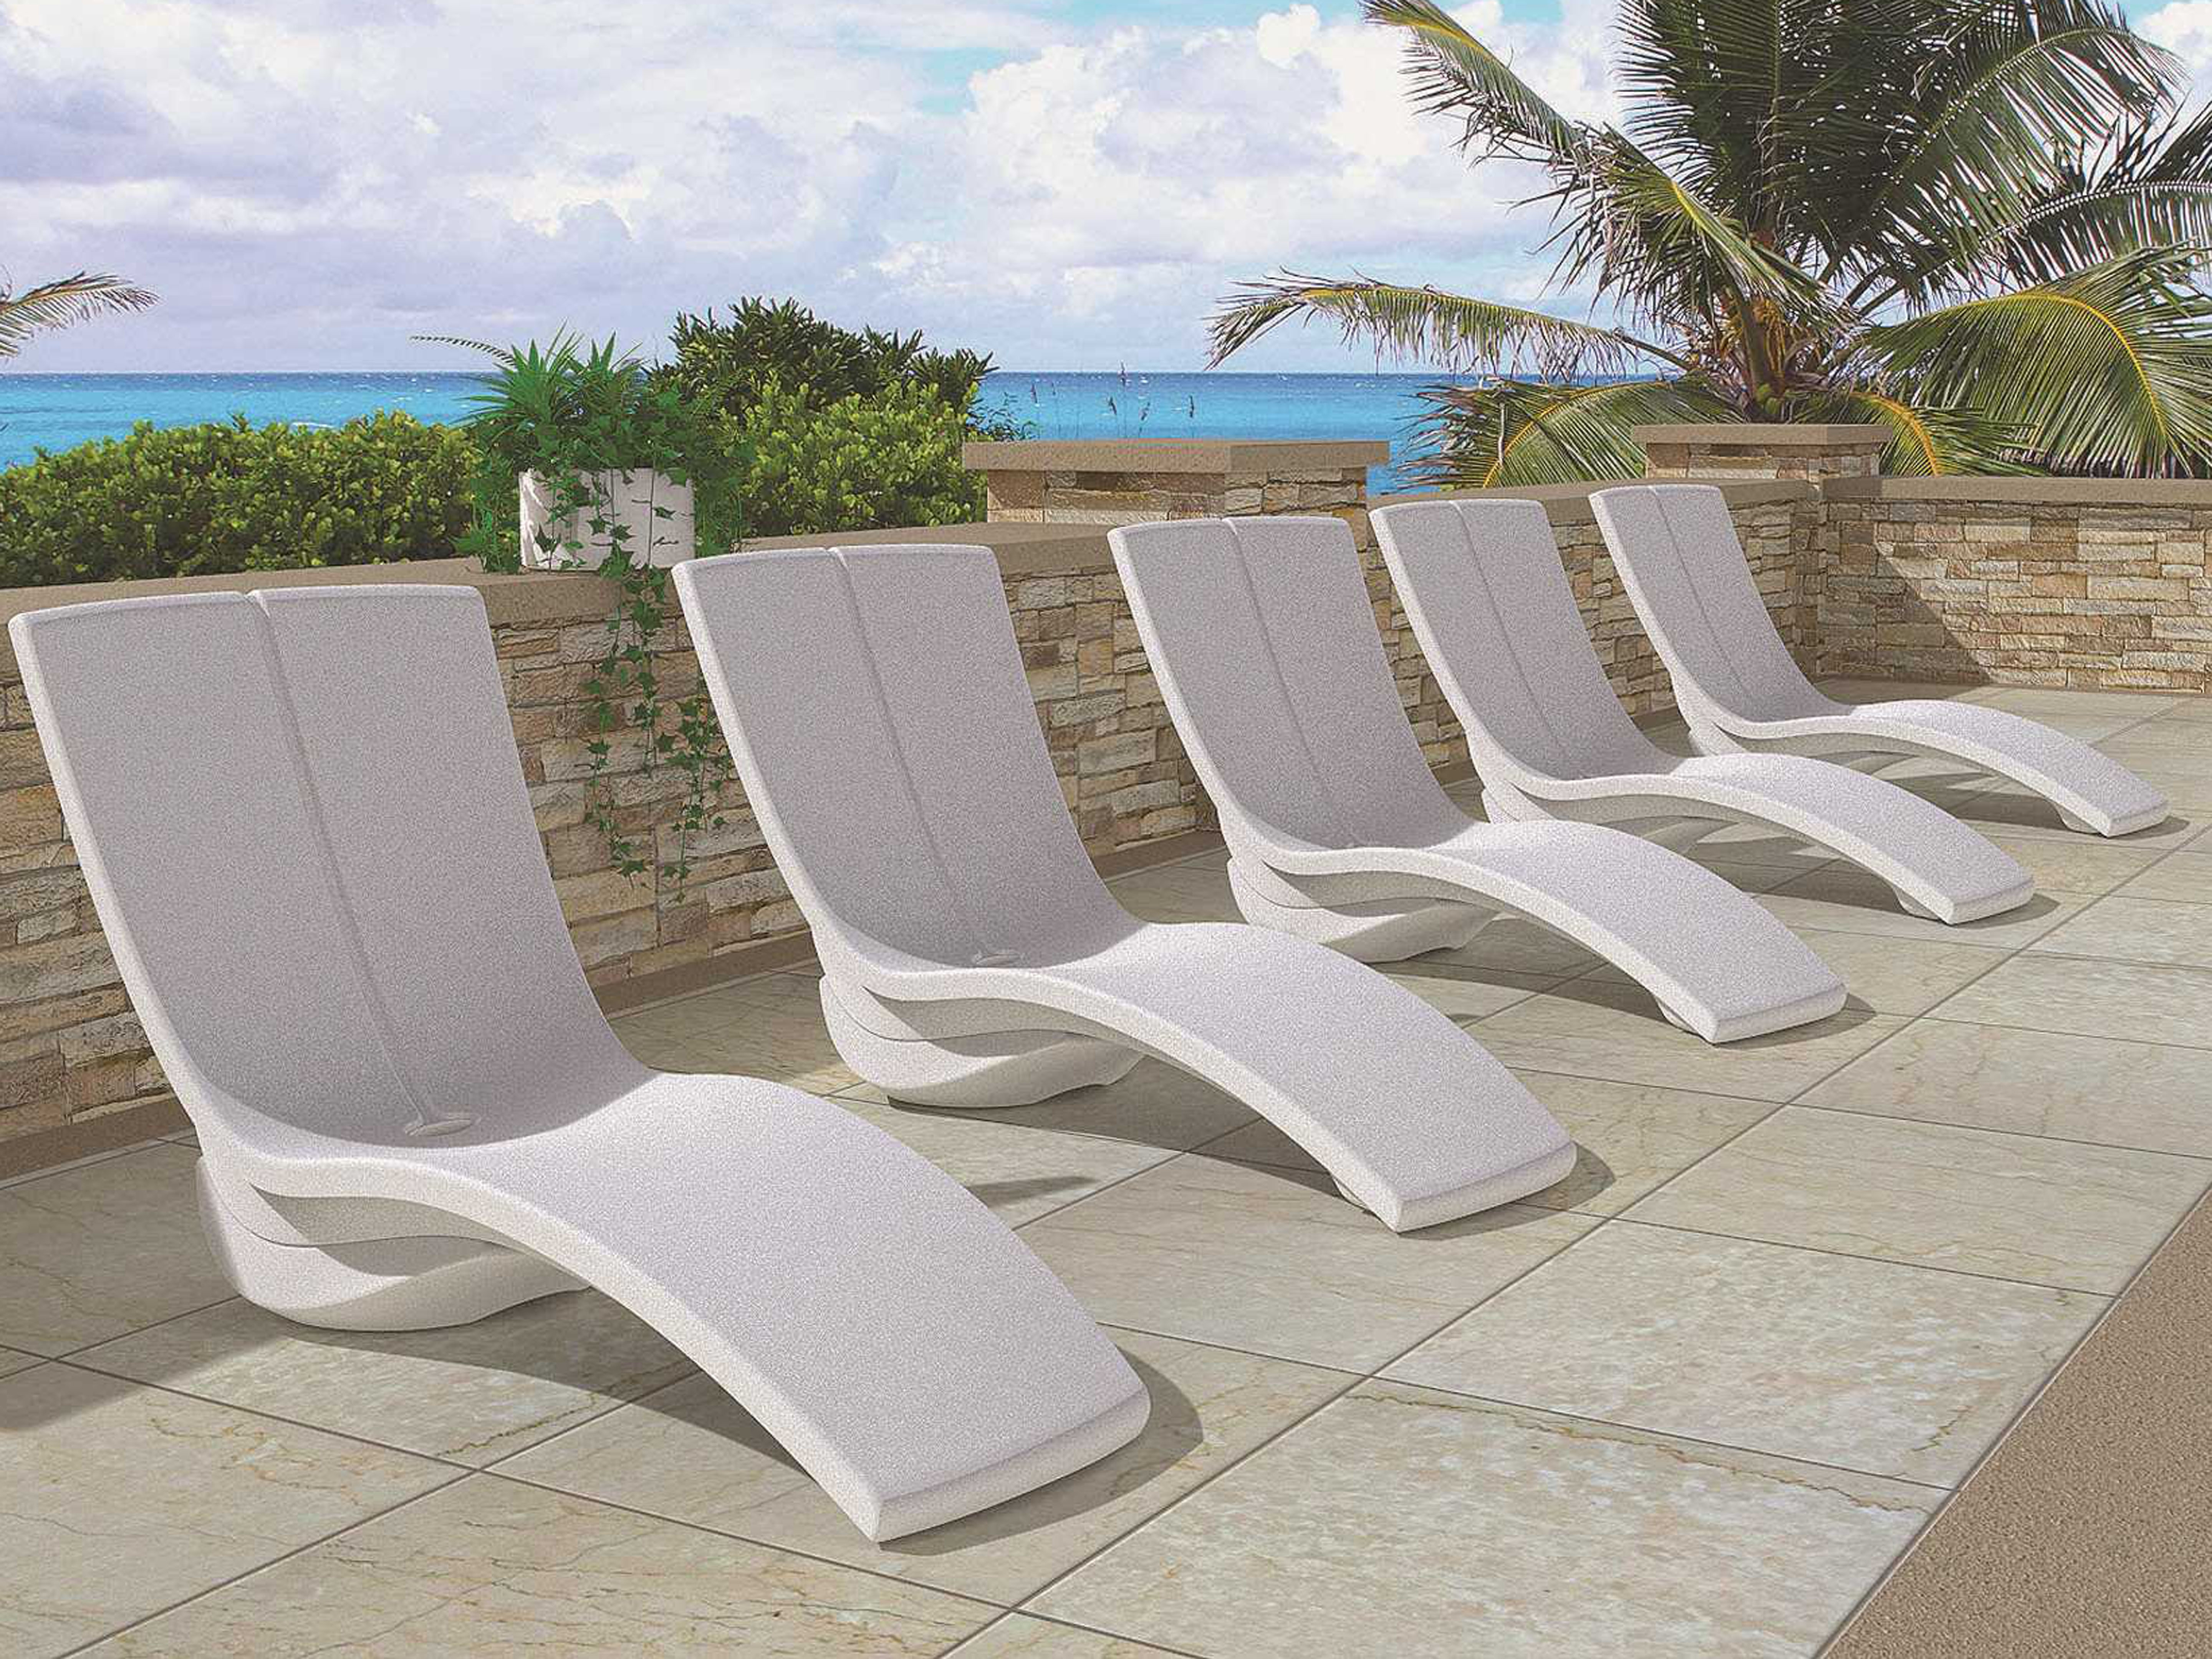 Tropitone Curve Recycled Plastic Rotoform3 Chaise Lounge With In Most Up To Date Tropitone Chaise Lounges (View 9 of 15)